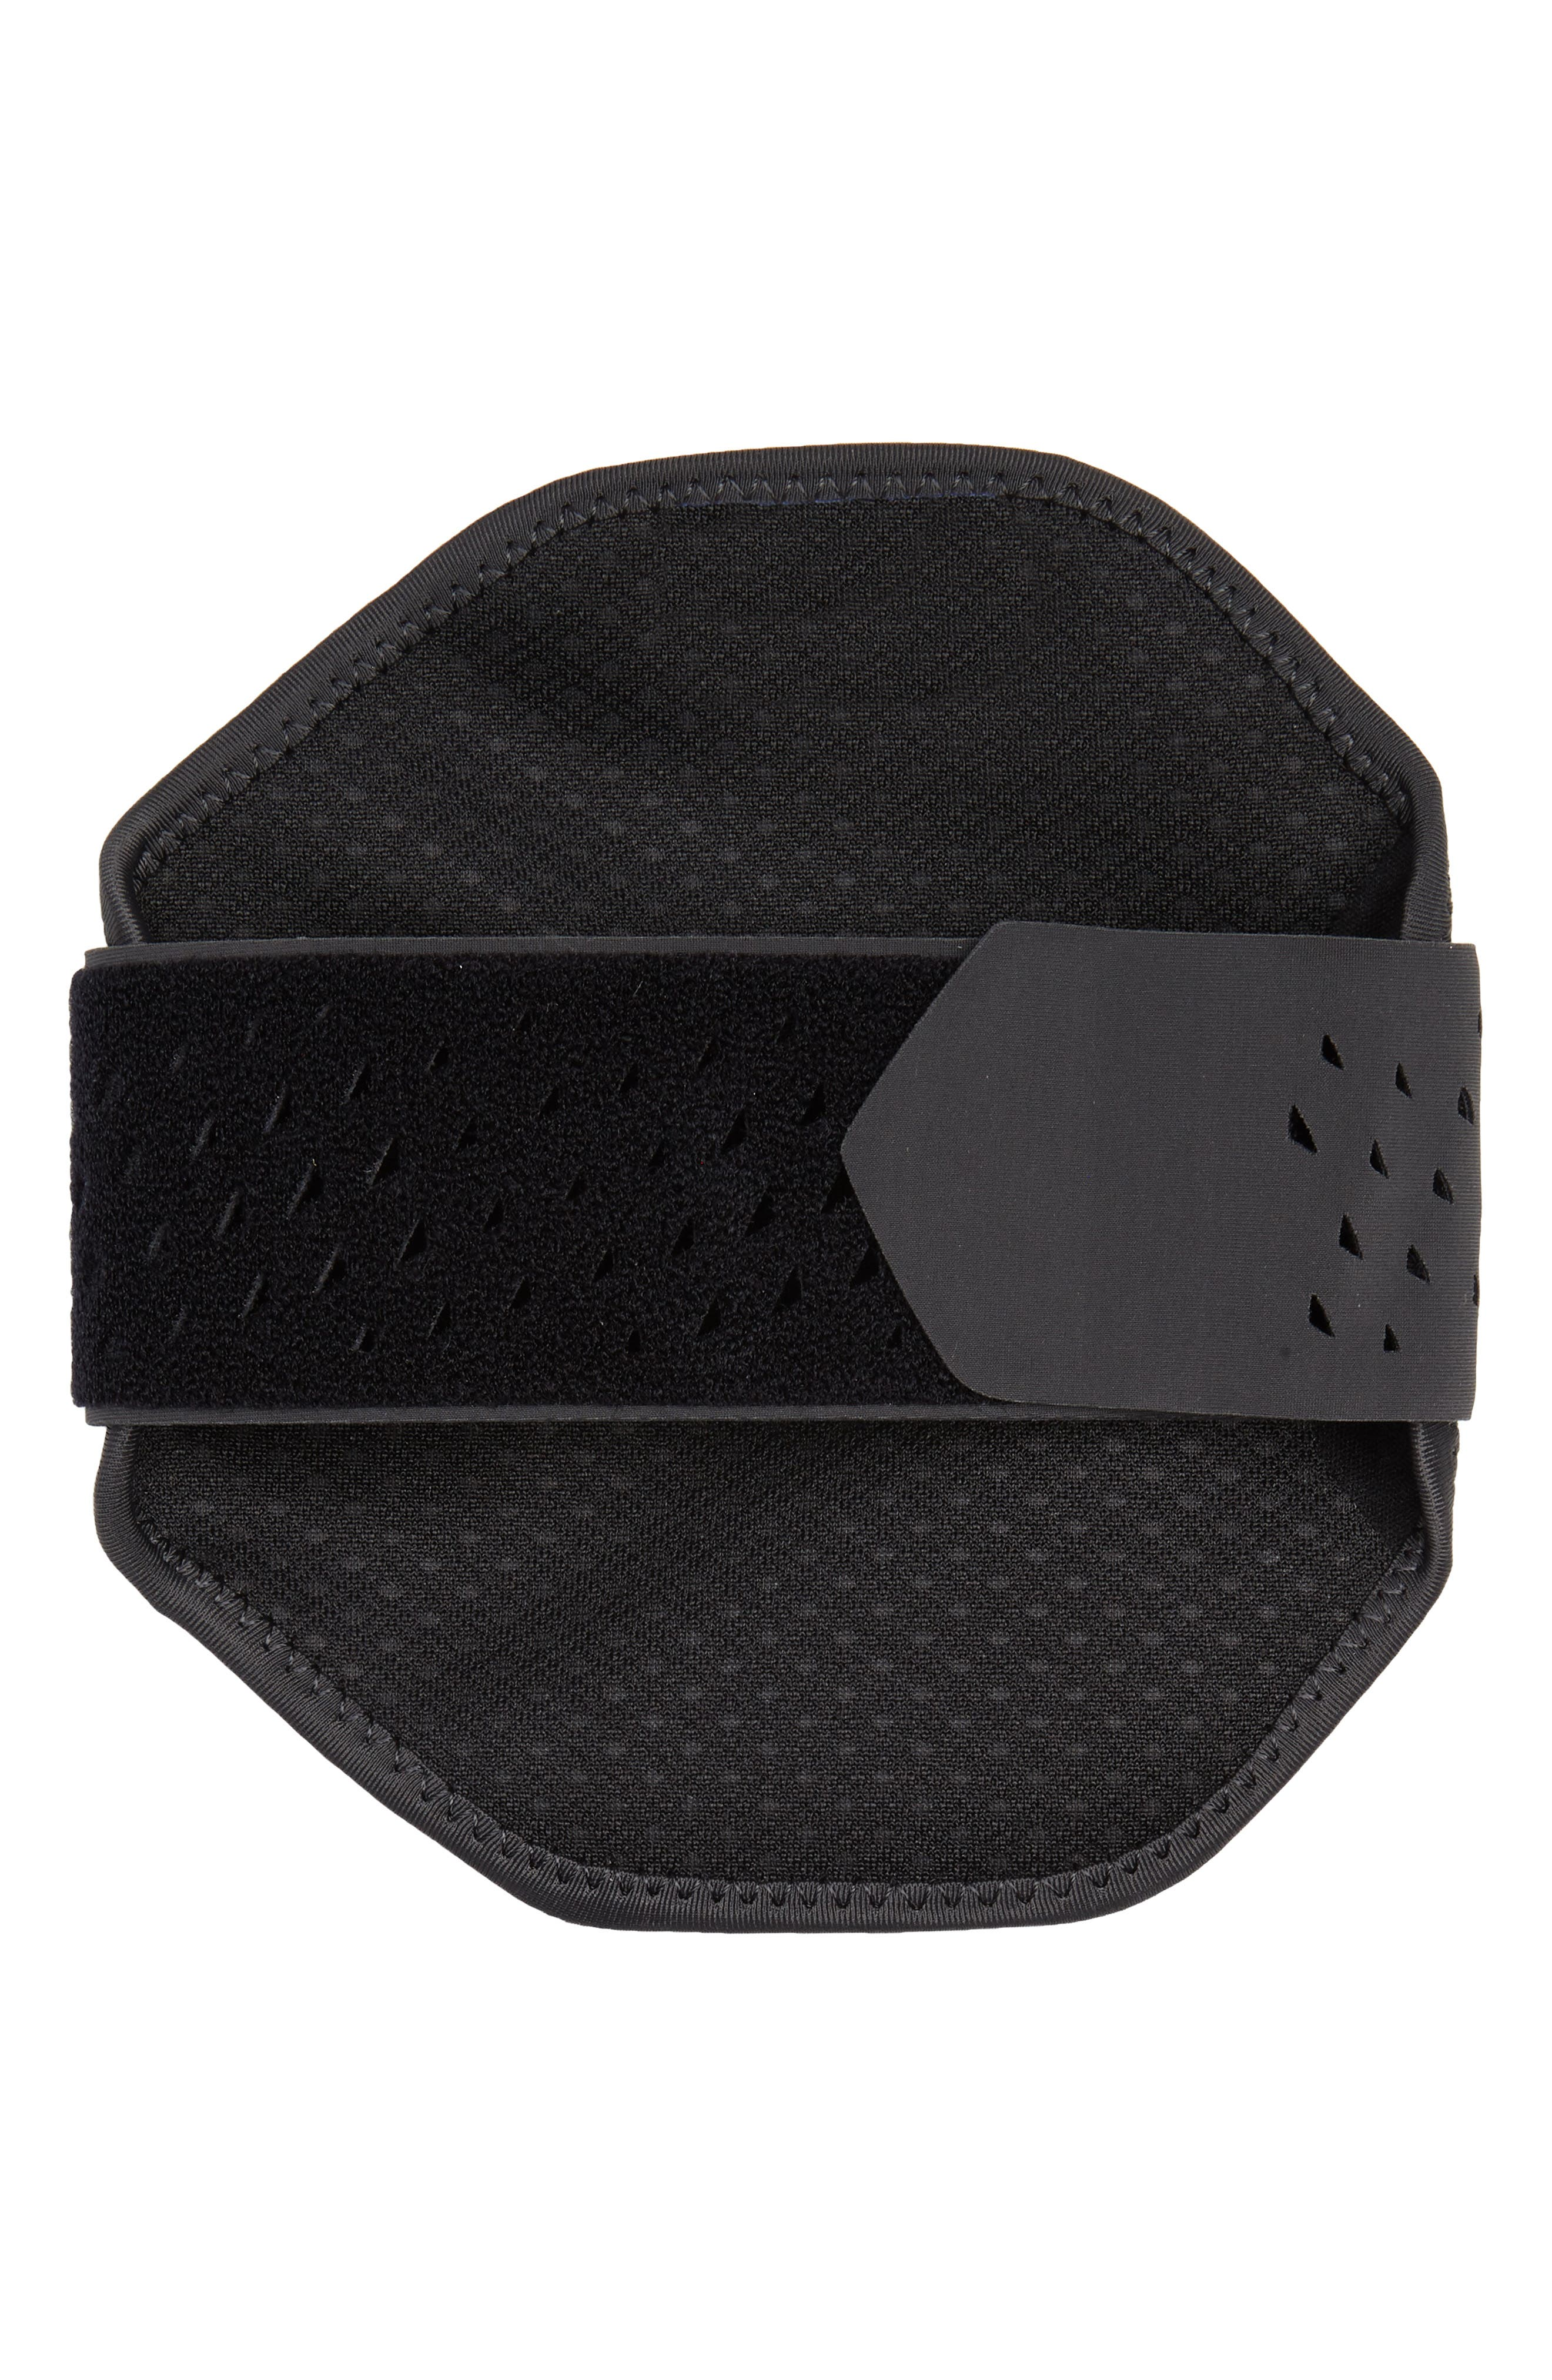 Pocket Armband,                             Alternate thumbnail 2, color,                             Anthracite/ Black/ Silver